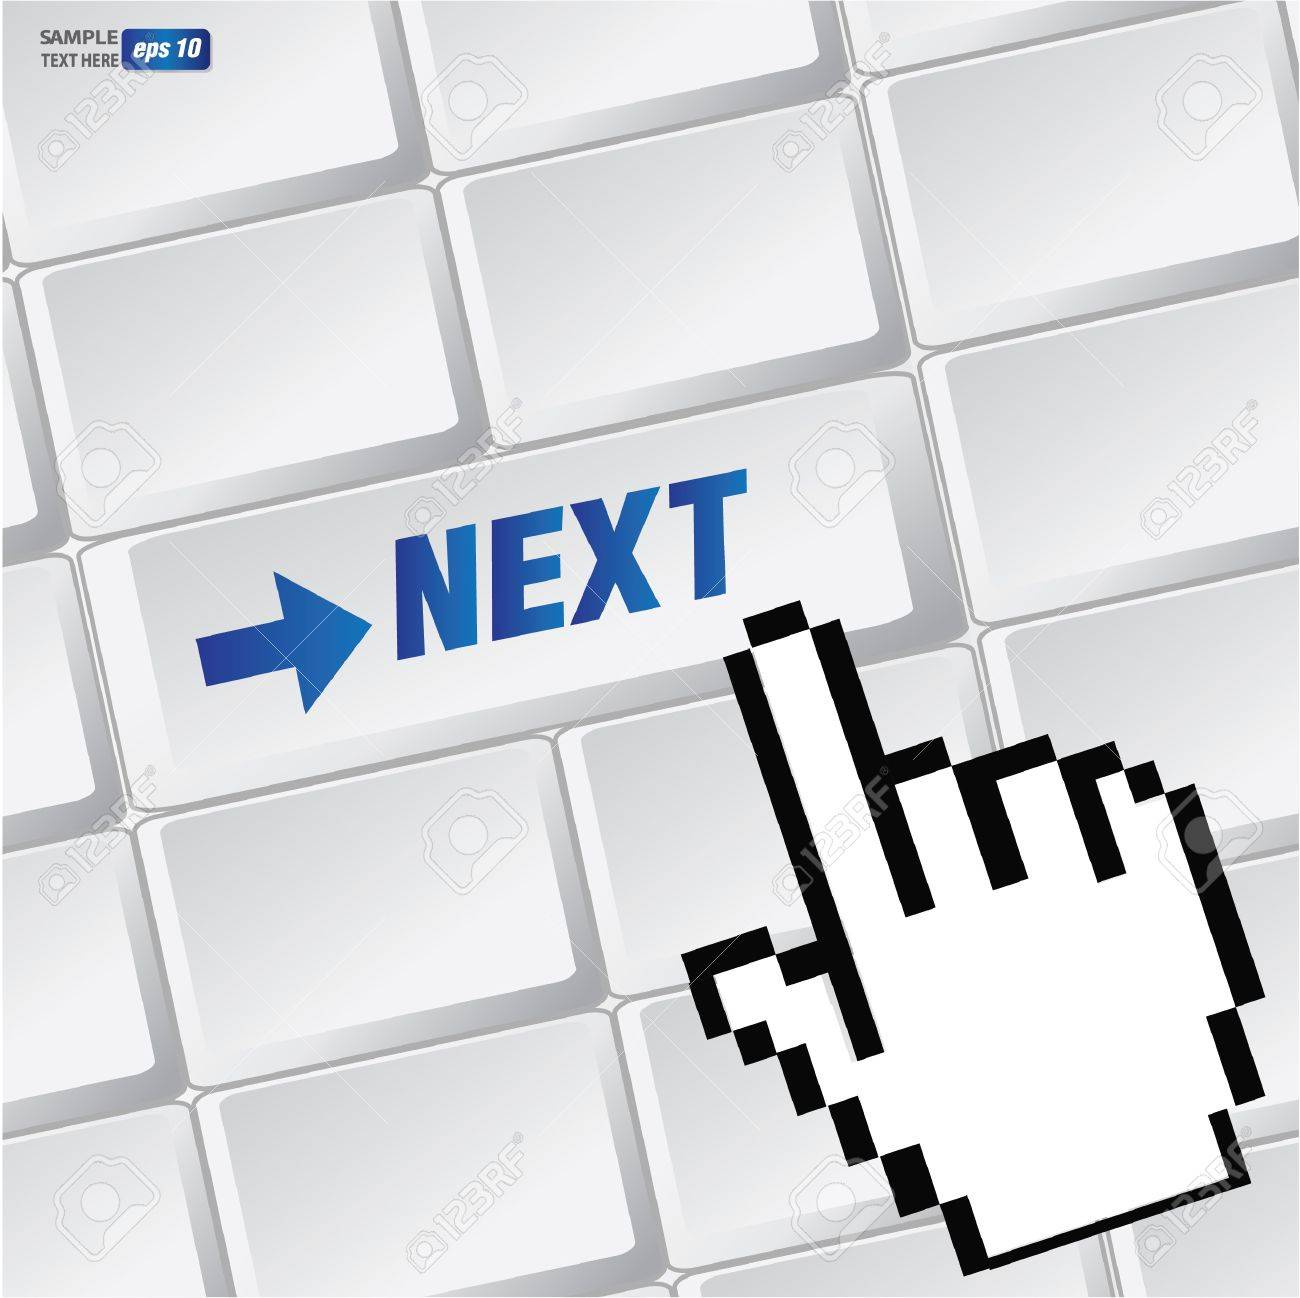 Next symbol on keyboard,vector Stock Vector - 18616868